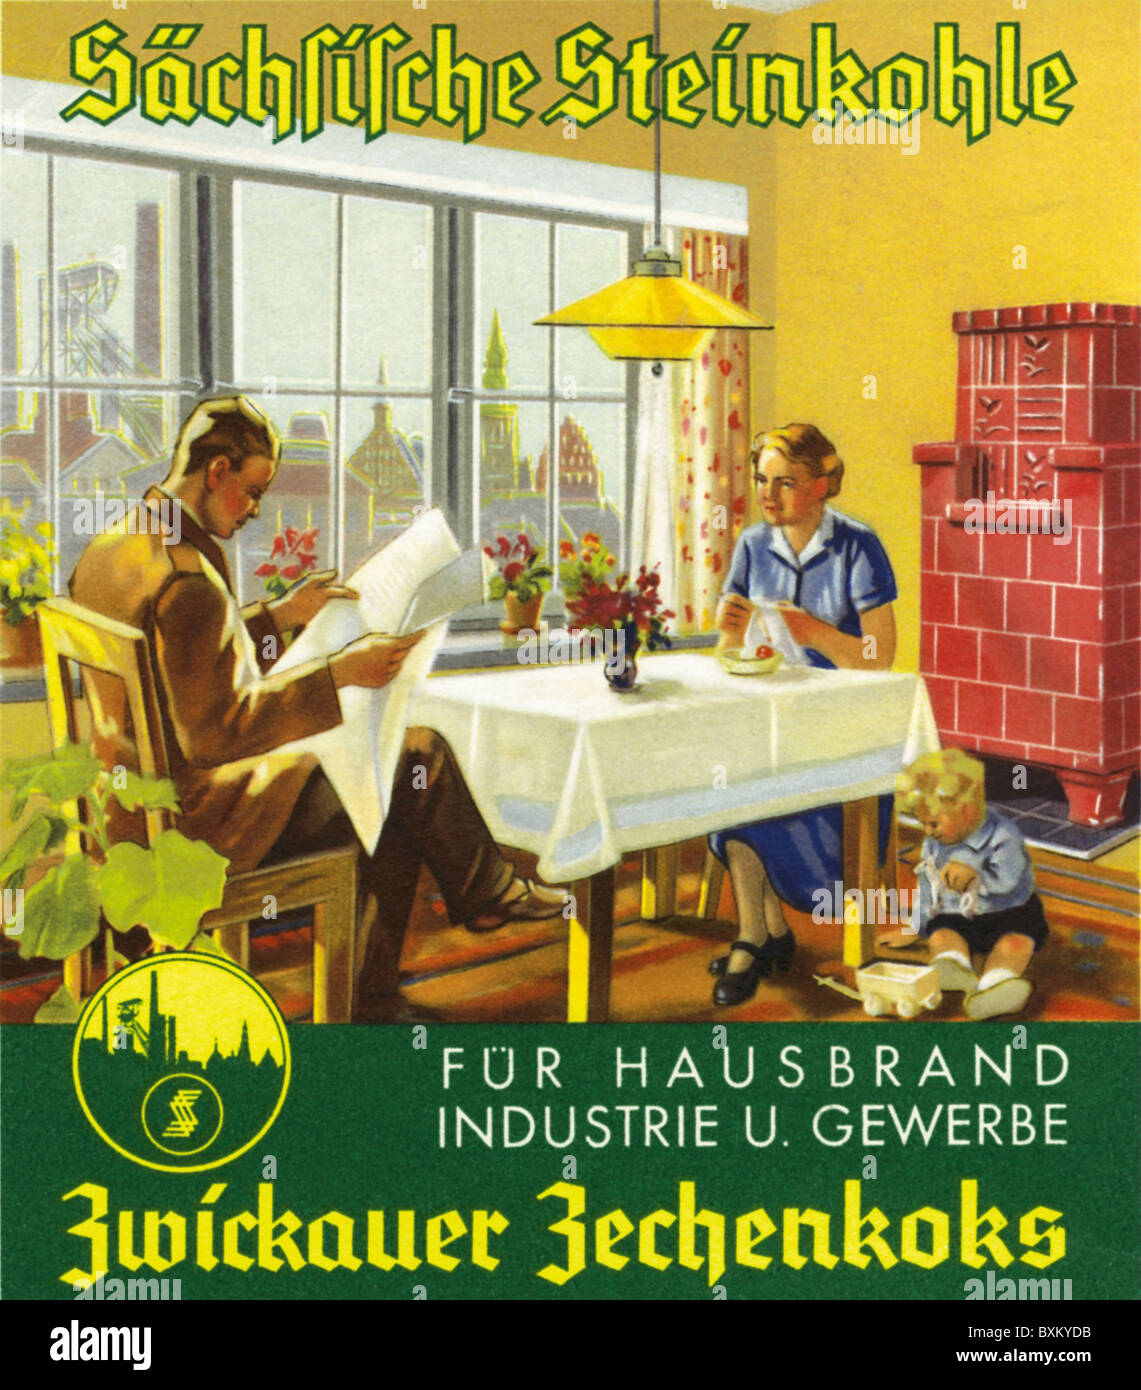 advertising, coal company, Zwickau Zechenkoks, family with tiled stove, Germany, 1938, Additional-Rights-Clearences - Stock Image